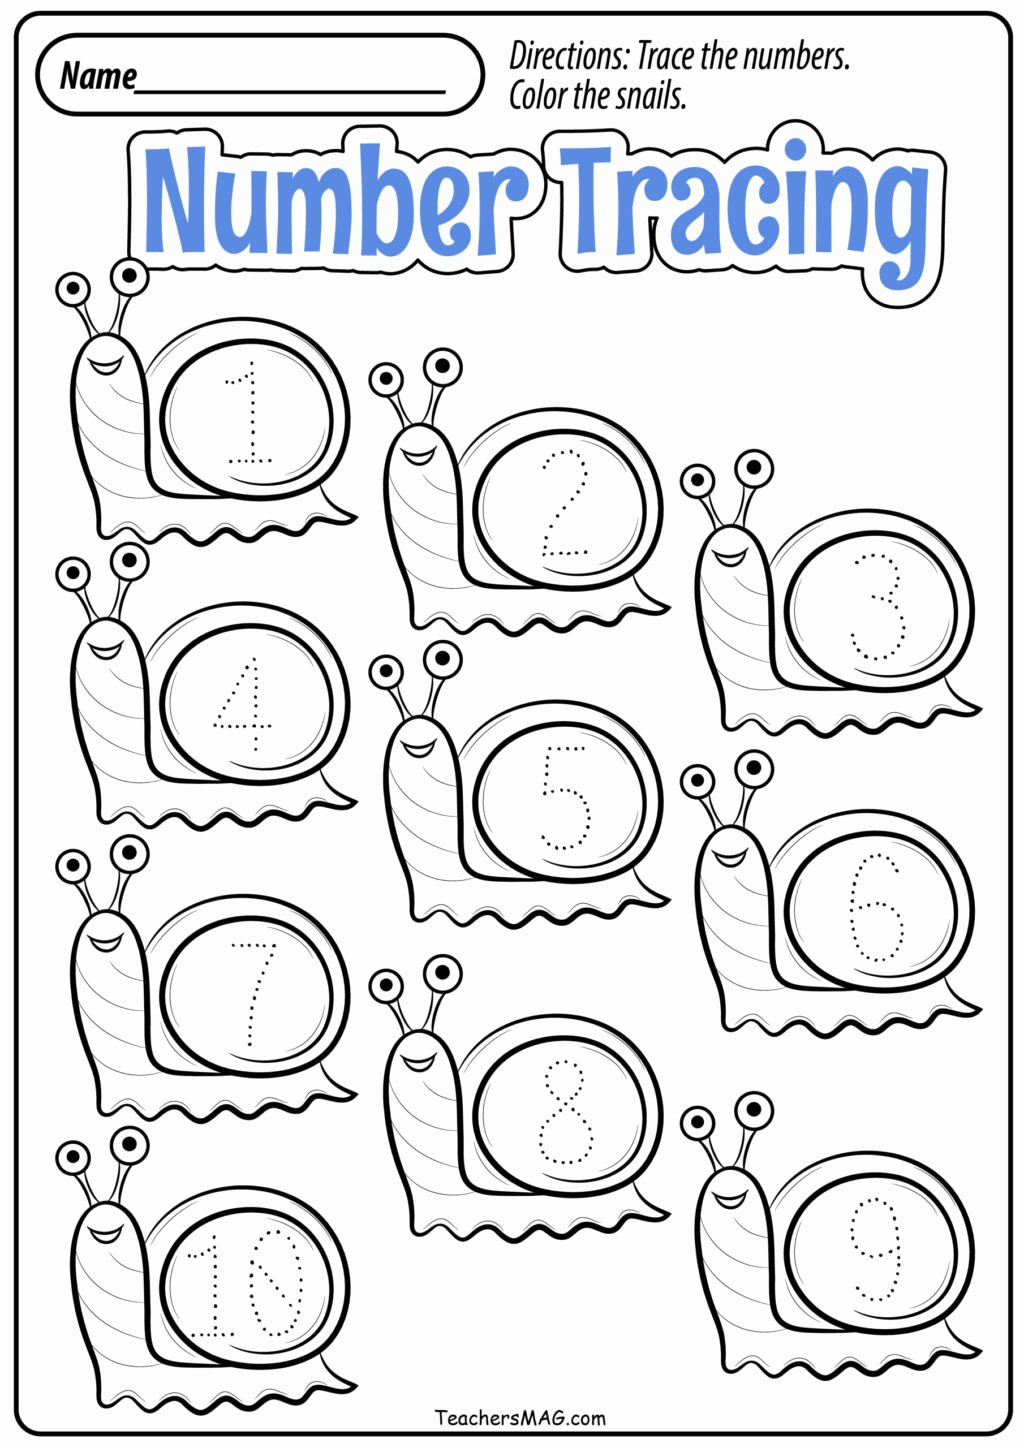 Printable Cutting Worksheets for Preschoolers Lovely Worksheet Printable Cutting Activities for toddlers 2nd